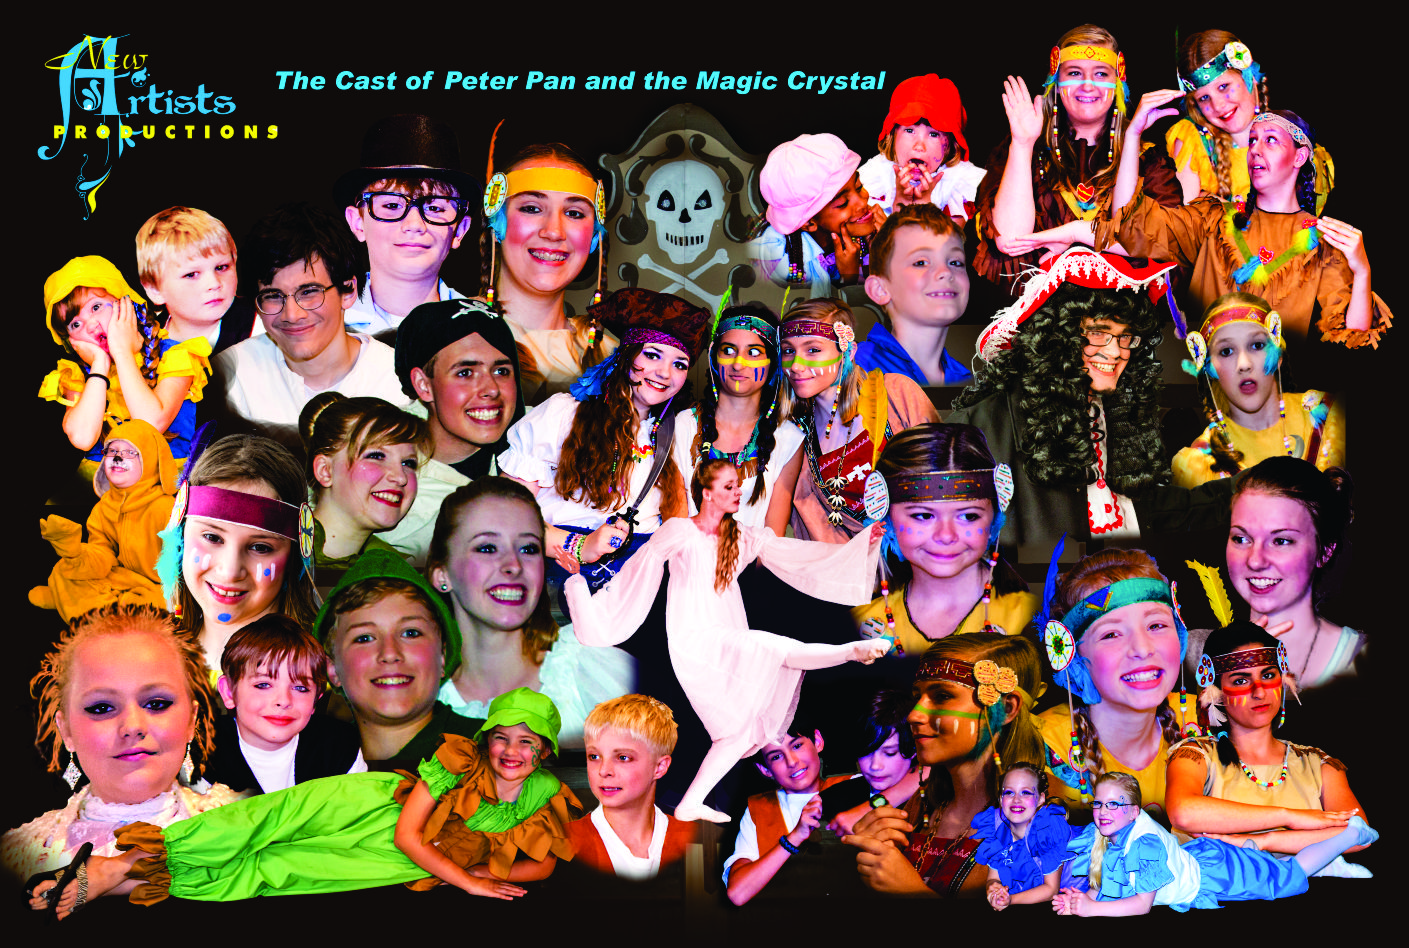 Peter Pan and the Magic Crystal